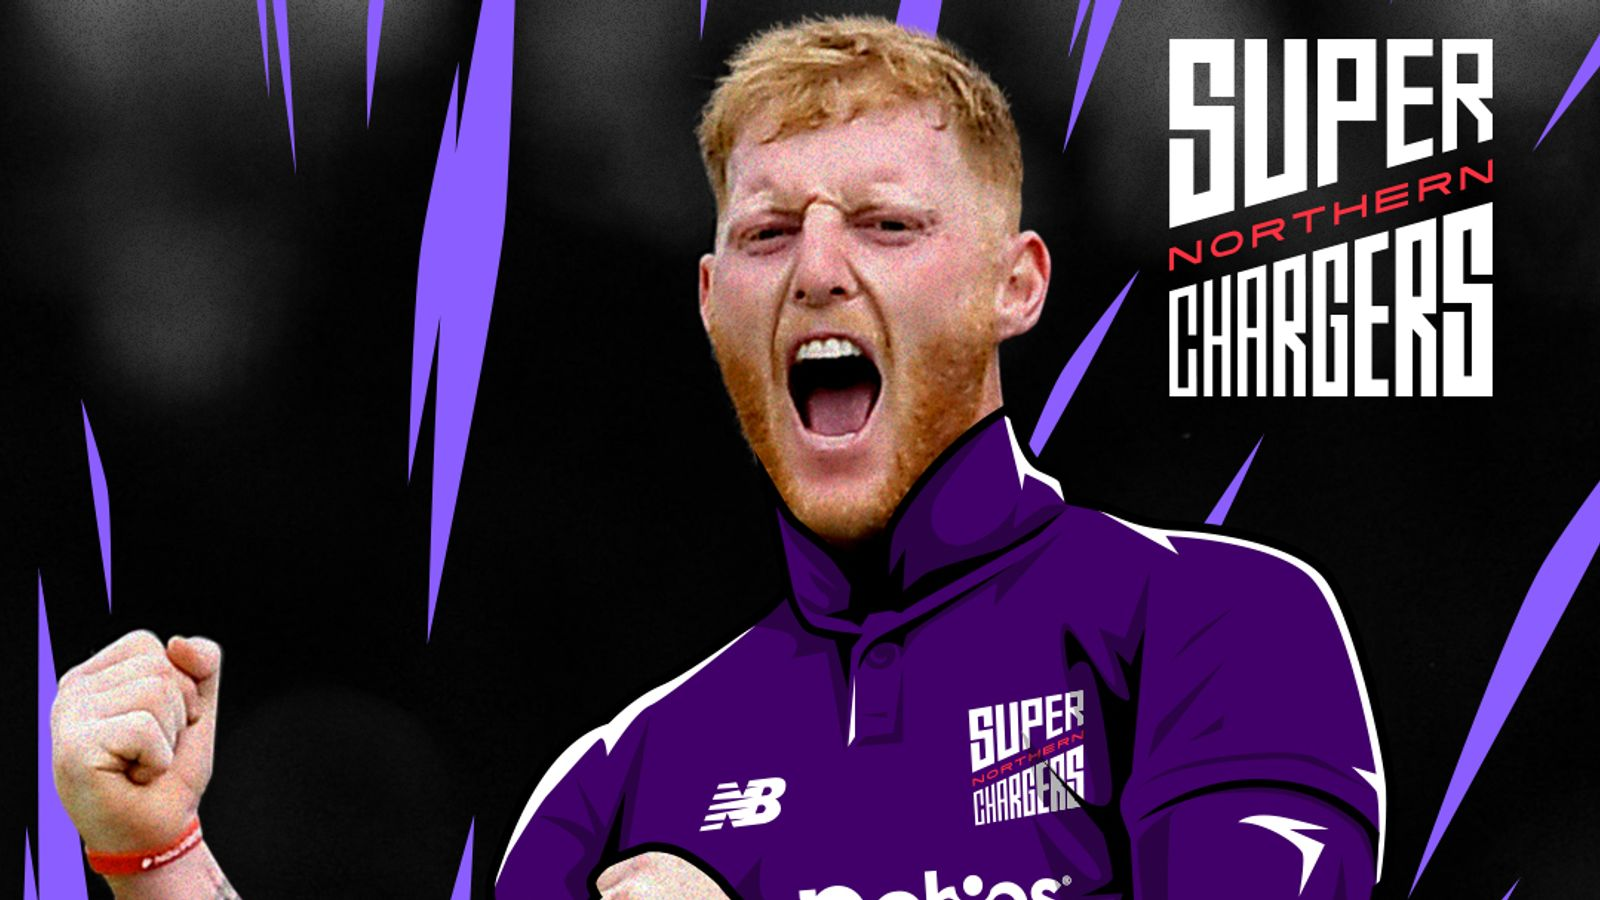 skysports ben stokes northern superchargers 4794034.